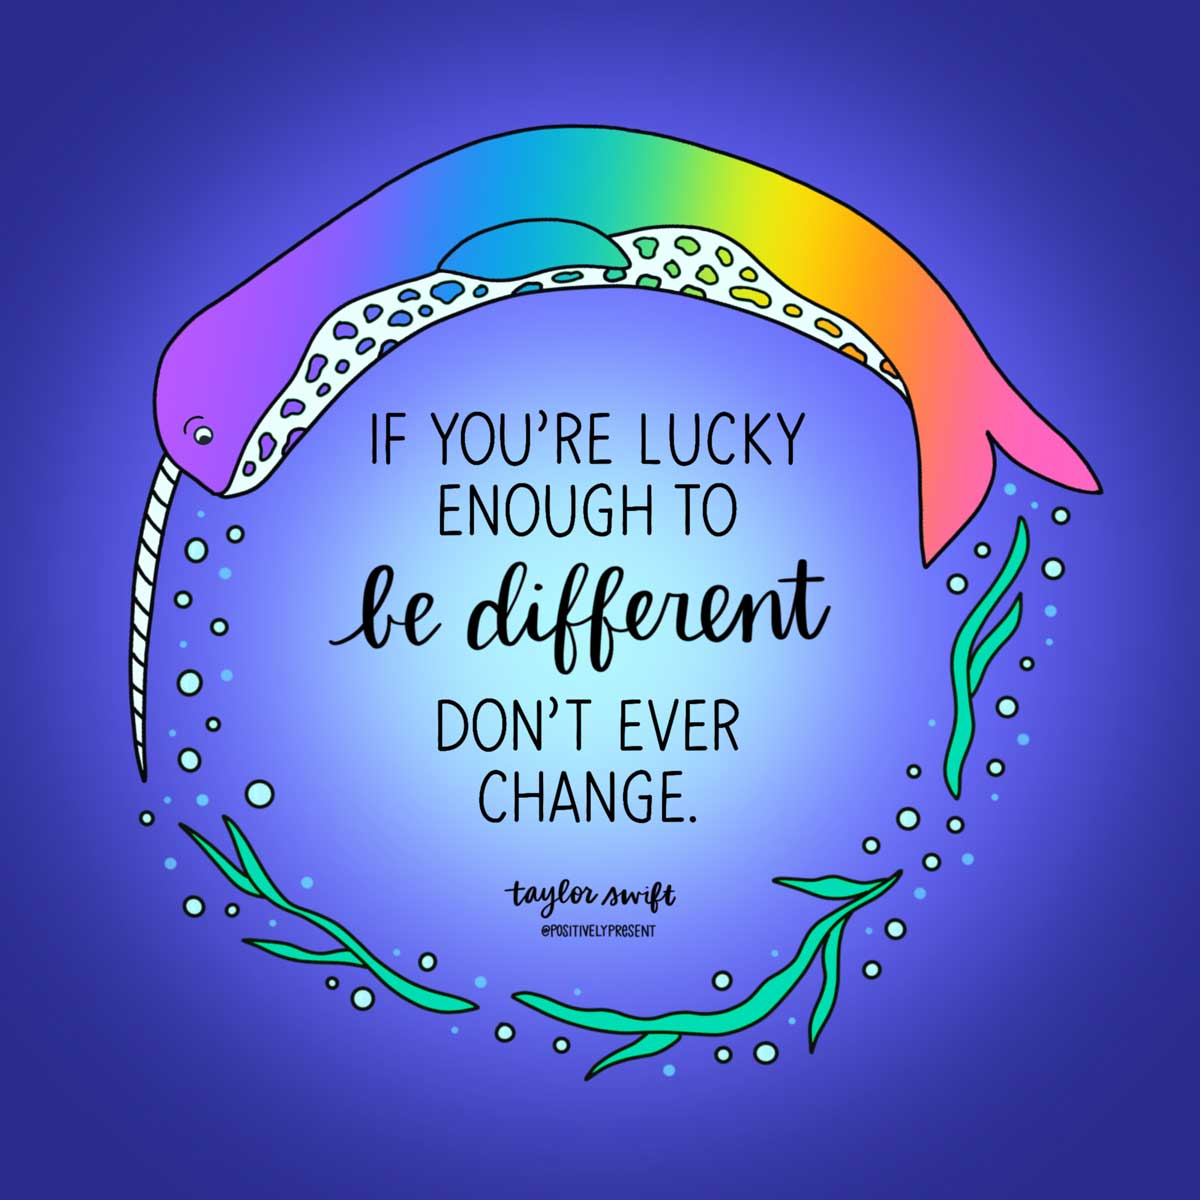 lucky to be different don't change taylor swift quote on blue art of narwhal.